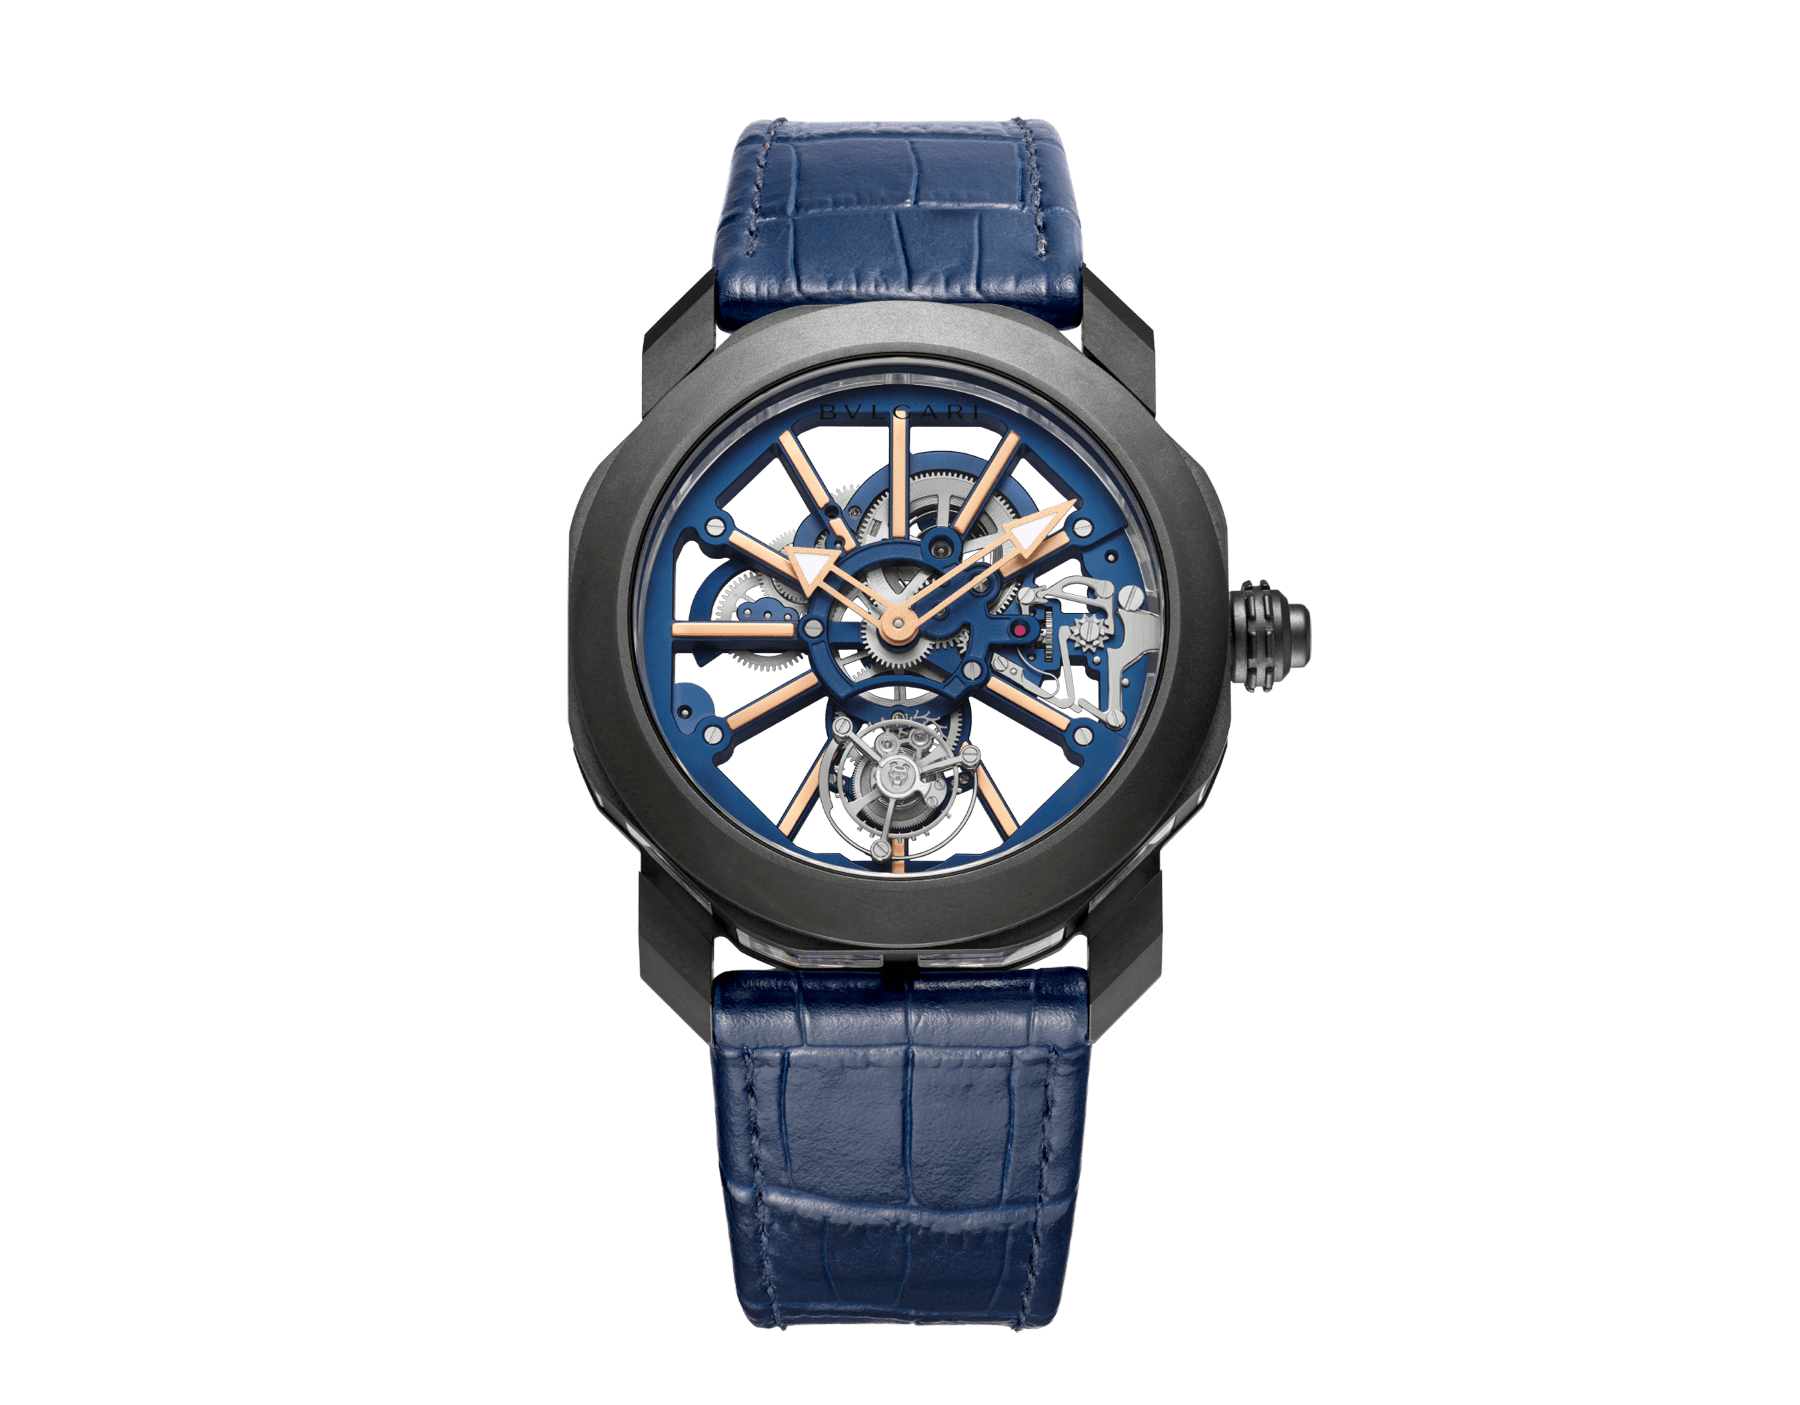 Octo Roma Tourbillon Sapphire watch with mechanical manufacture movement, flying tourbillon, manual winding, titanium case with black Diamond Like Carbon treatment, sapphire middle case, blue PVD calibre decorated with 18 kt rose gold indexes on the bridges and blue alligator bracelet 103154 image 1